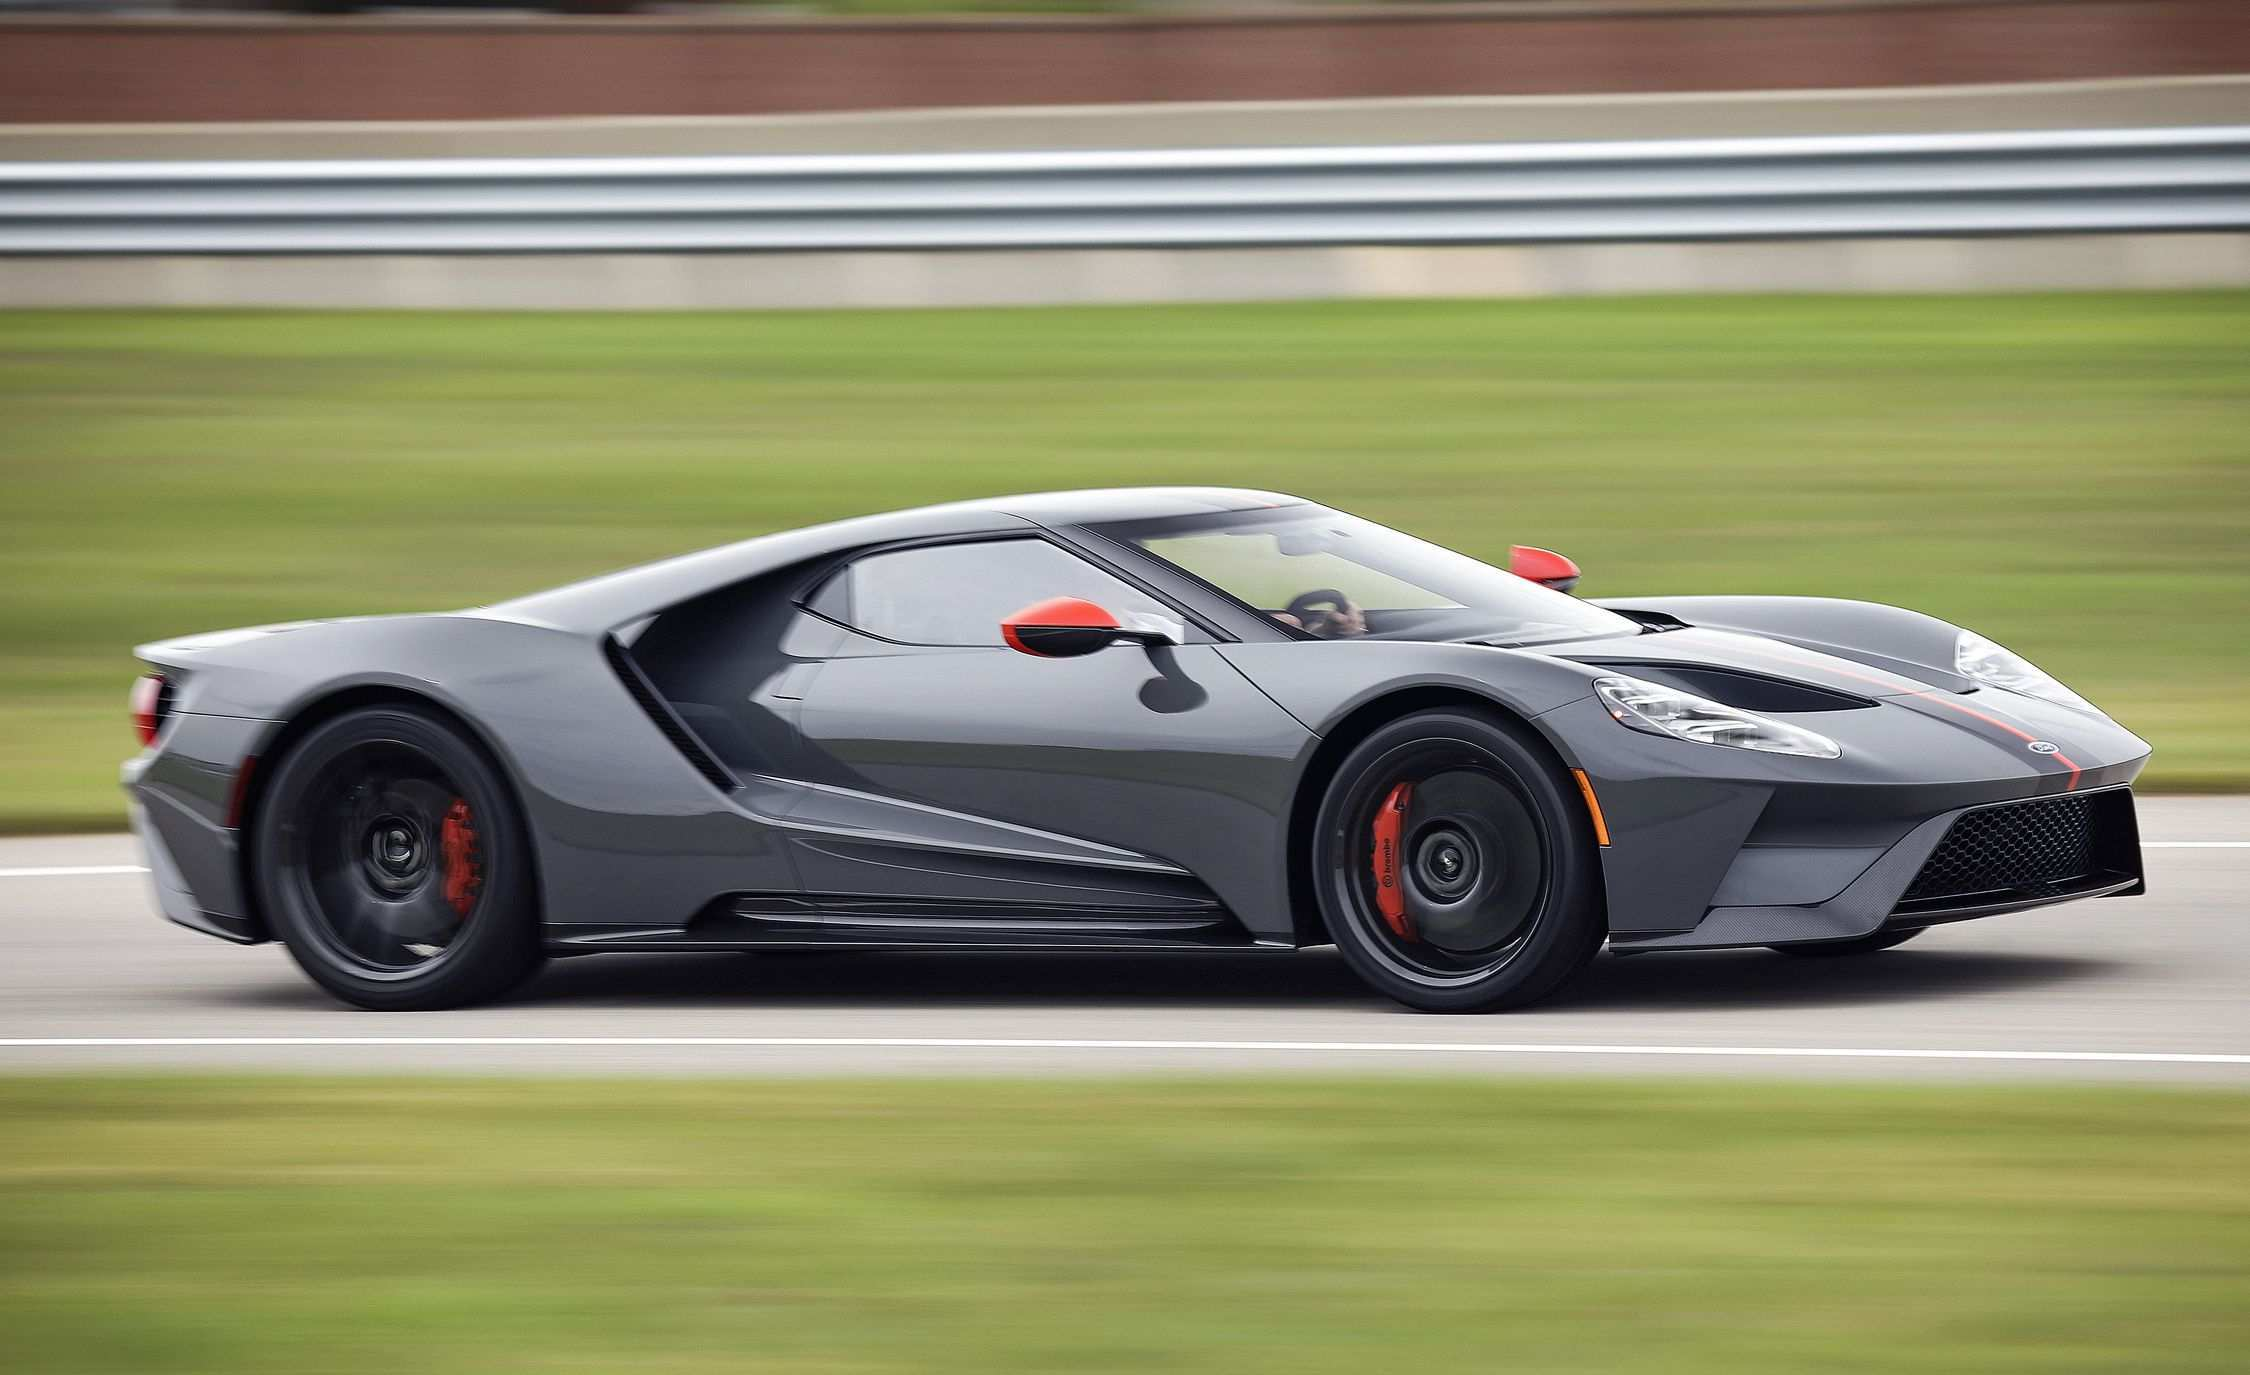 41 New 2019 Ford Gt Specs Rumors